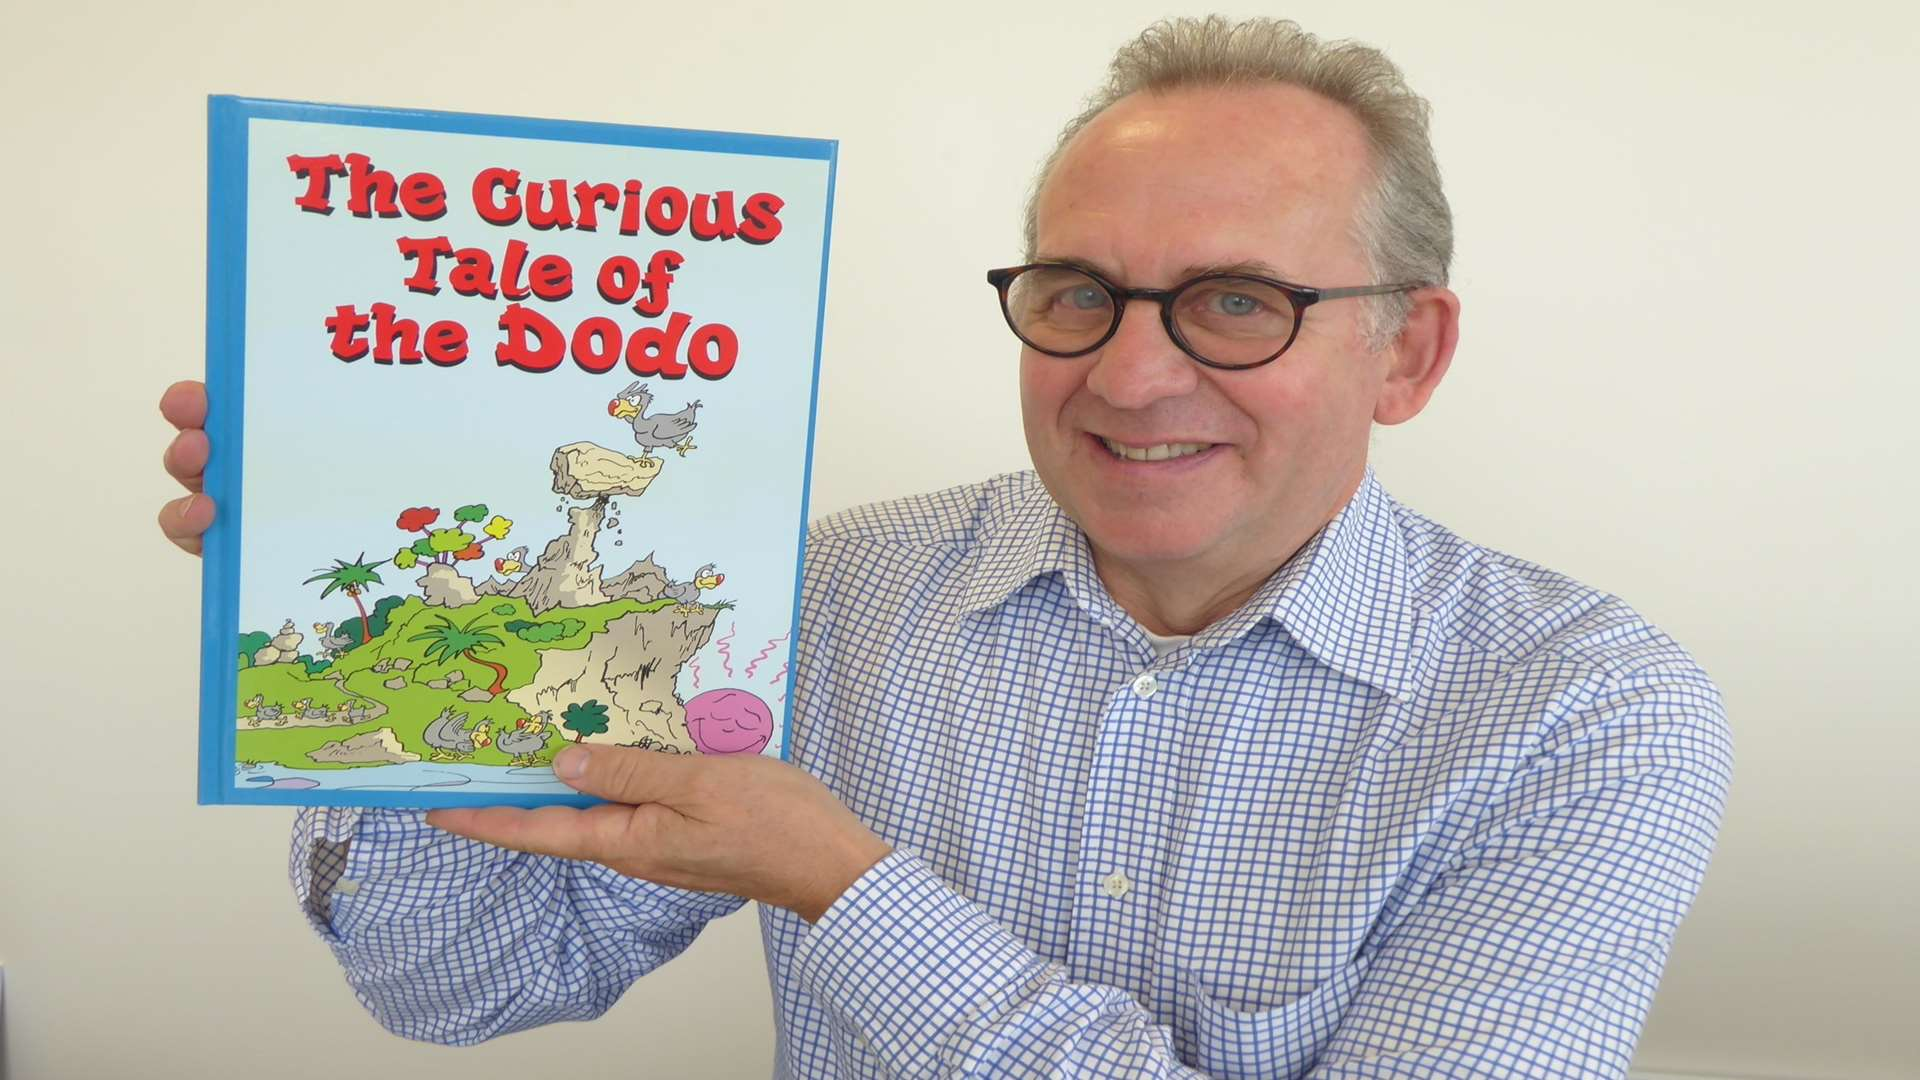 Whitstable author Anthony Cooper, holding his book The Curious Tale of the Dodo, is working with the KM Charity Team to promote World Book Day.